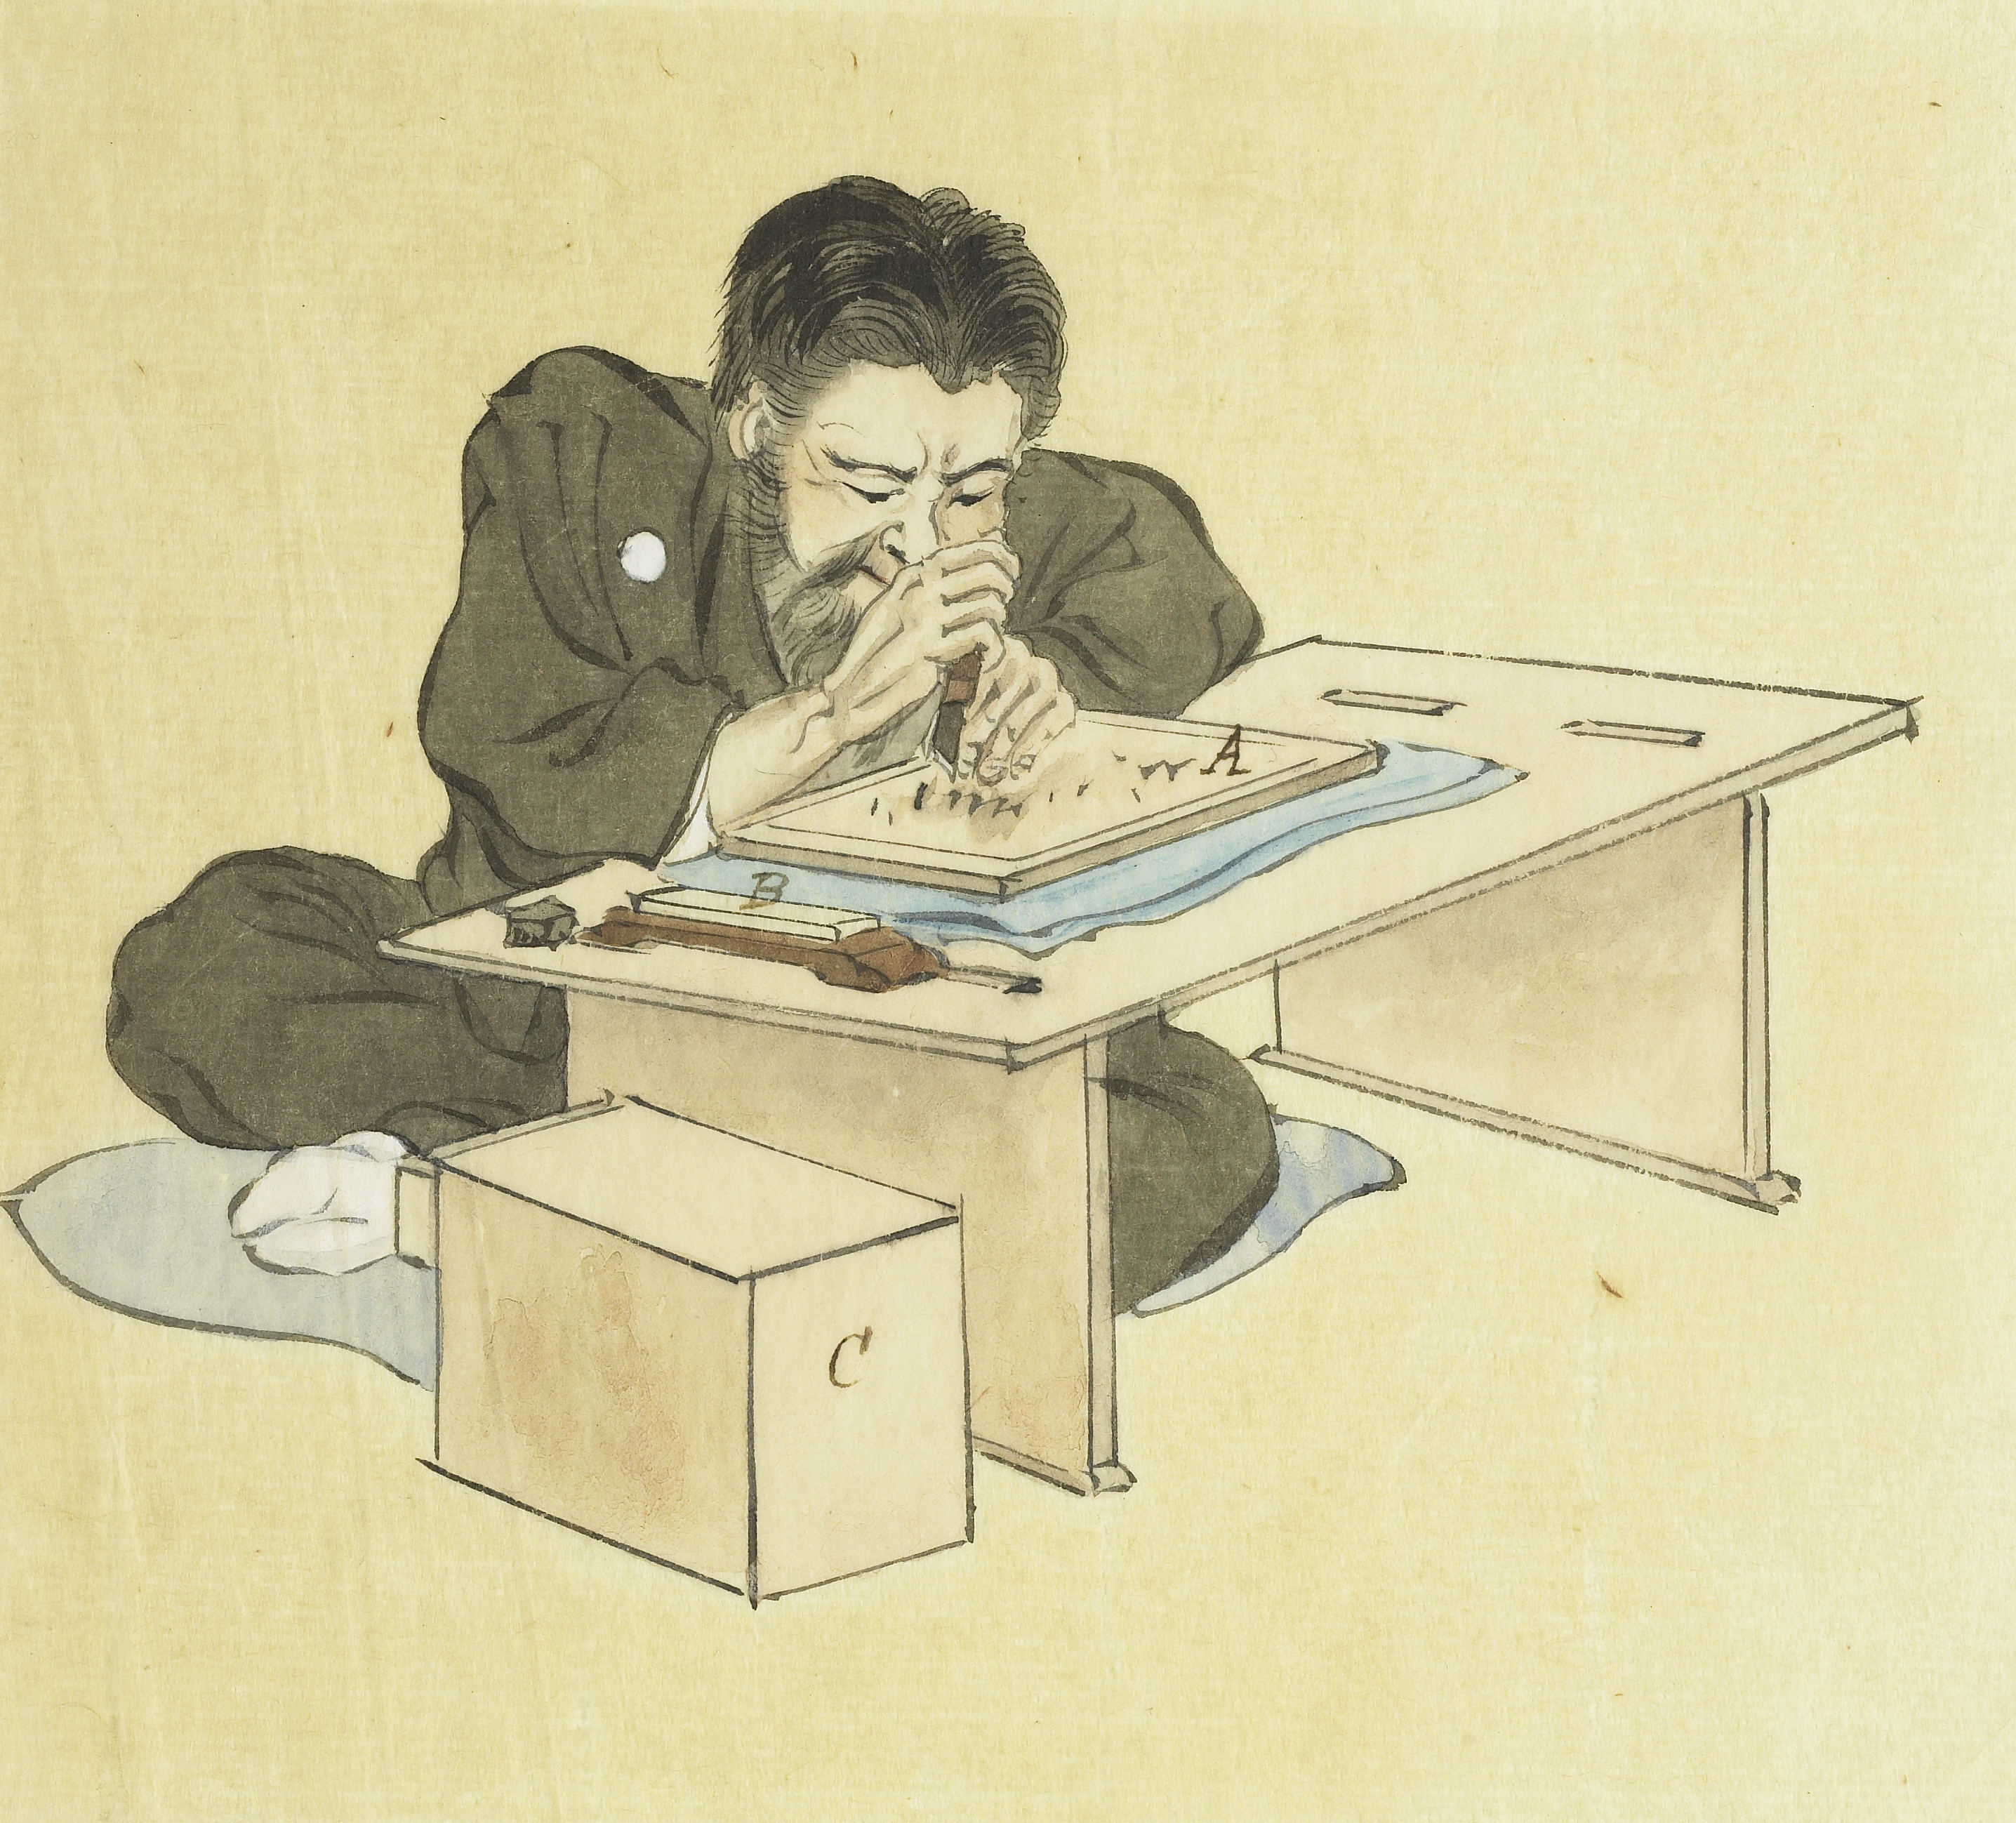 Watercolor illustration that accompanied the Tokuno gift showing the work of a Japanese blockcutter